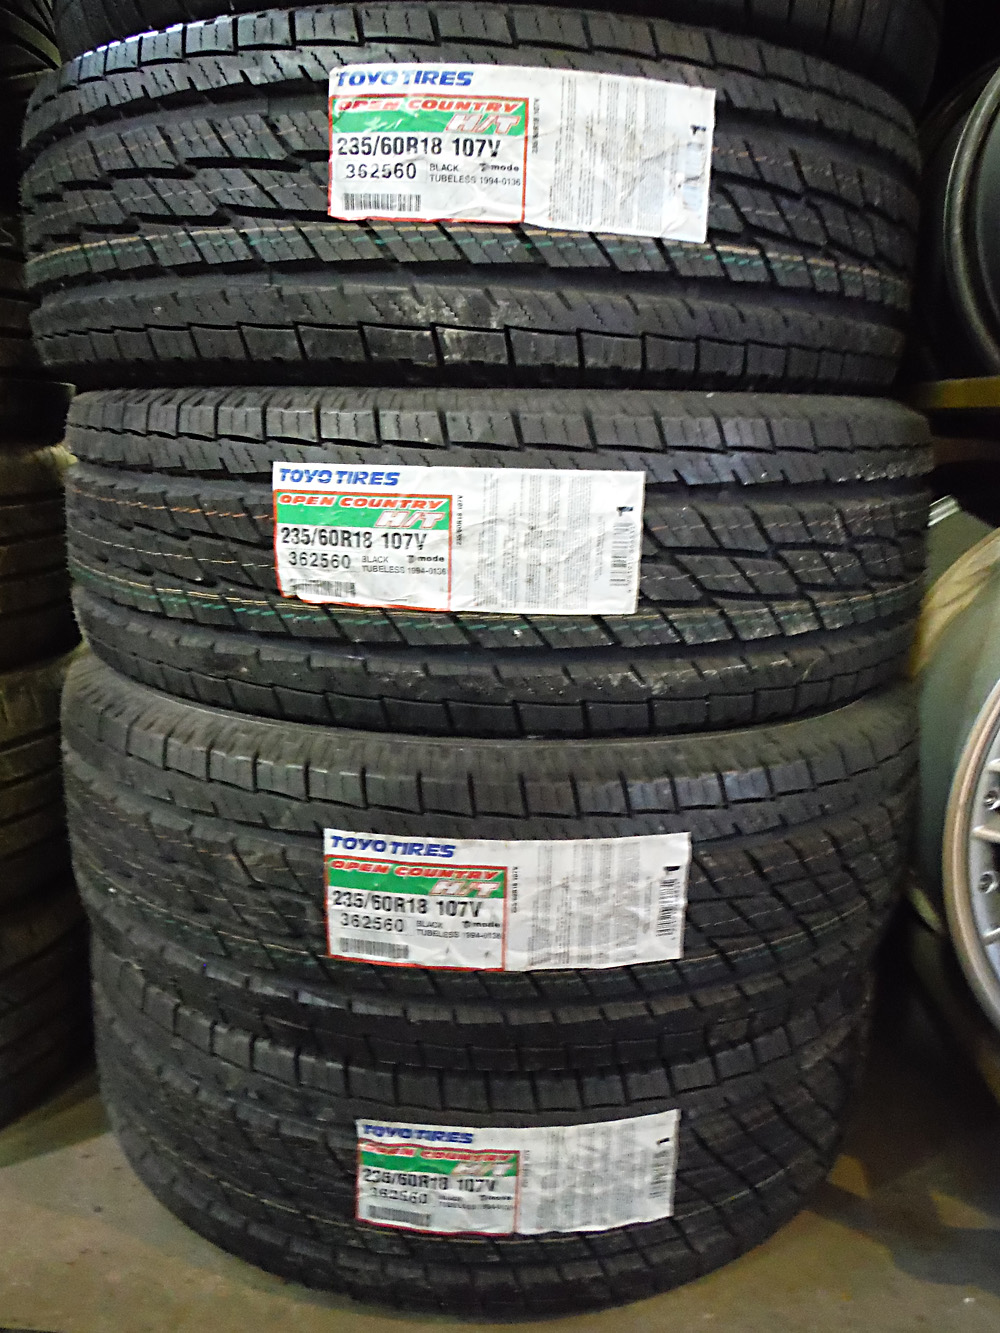 18 Inch Rims And Tires >> Toyo 235/60R18 Open Country Tires – SOLD | Tirehaus | New ...